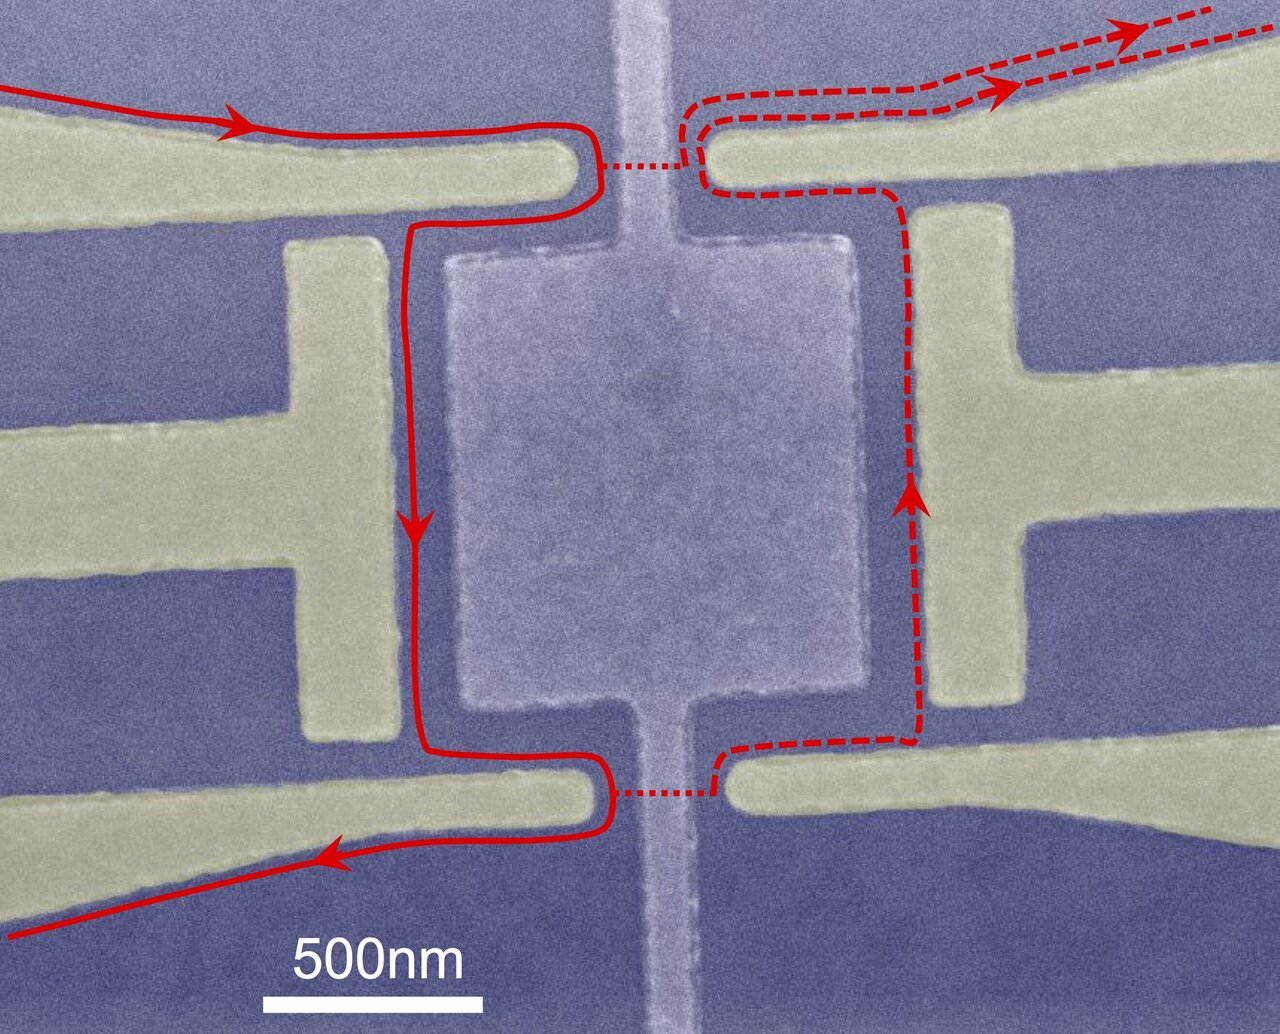 Quasiparticles experimentally shown to interfere for first time